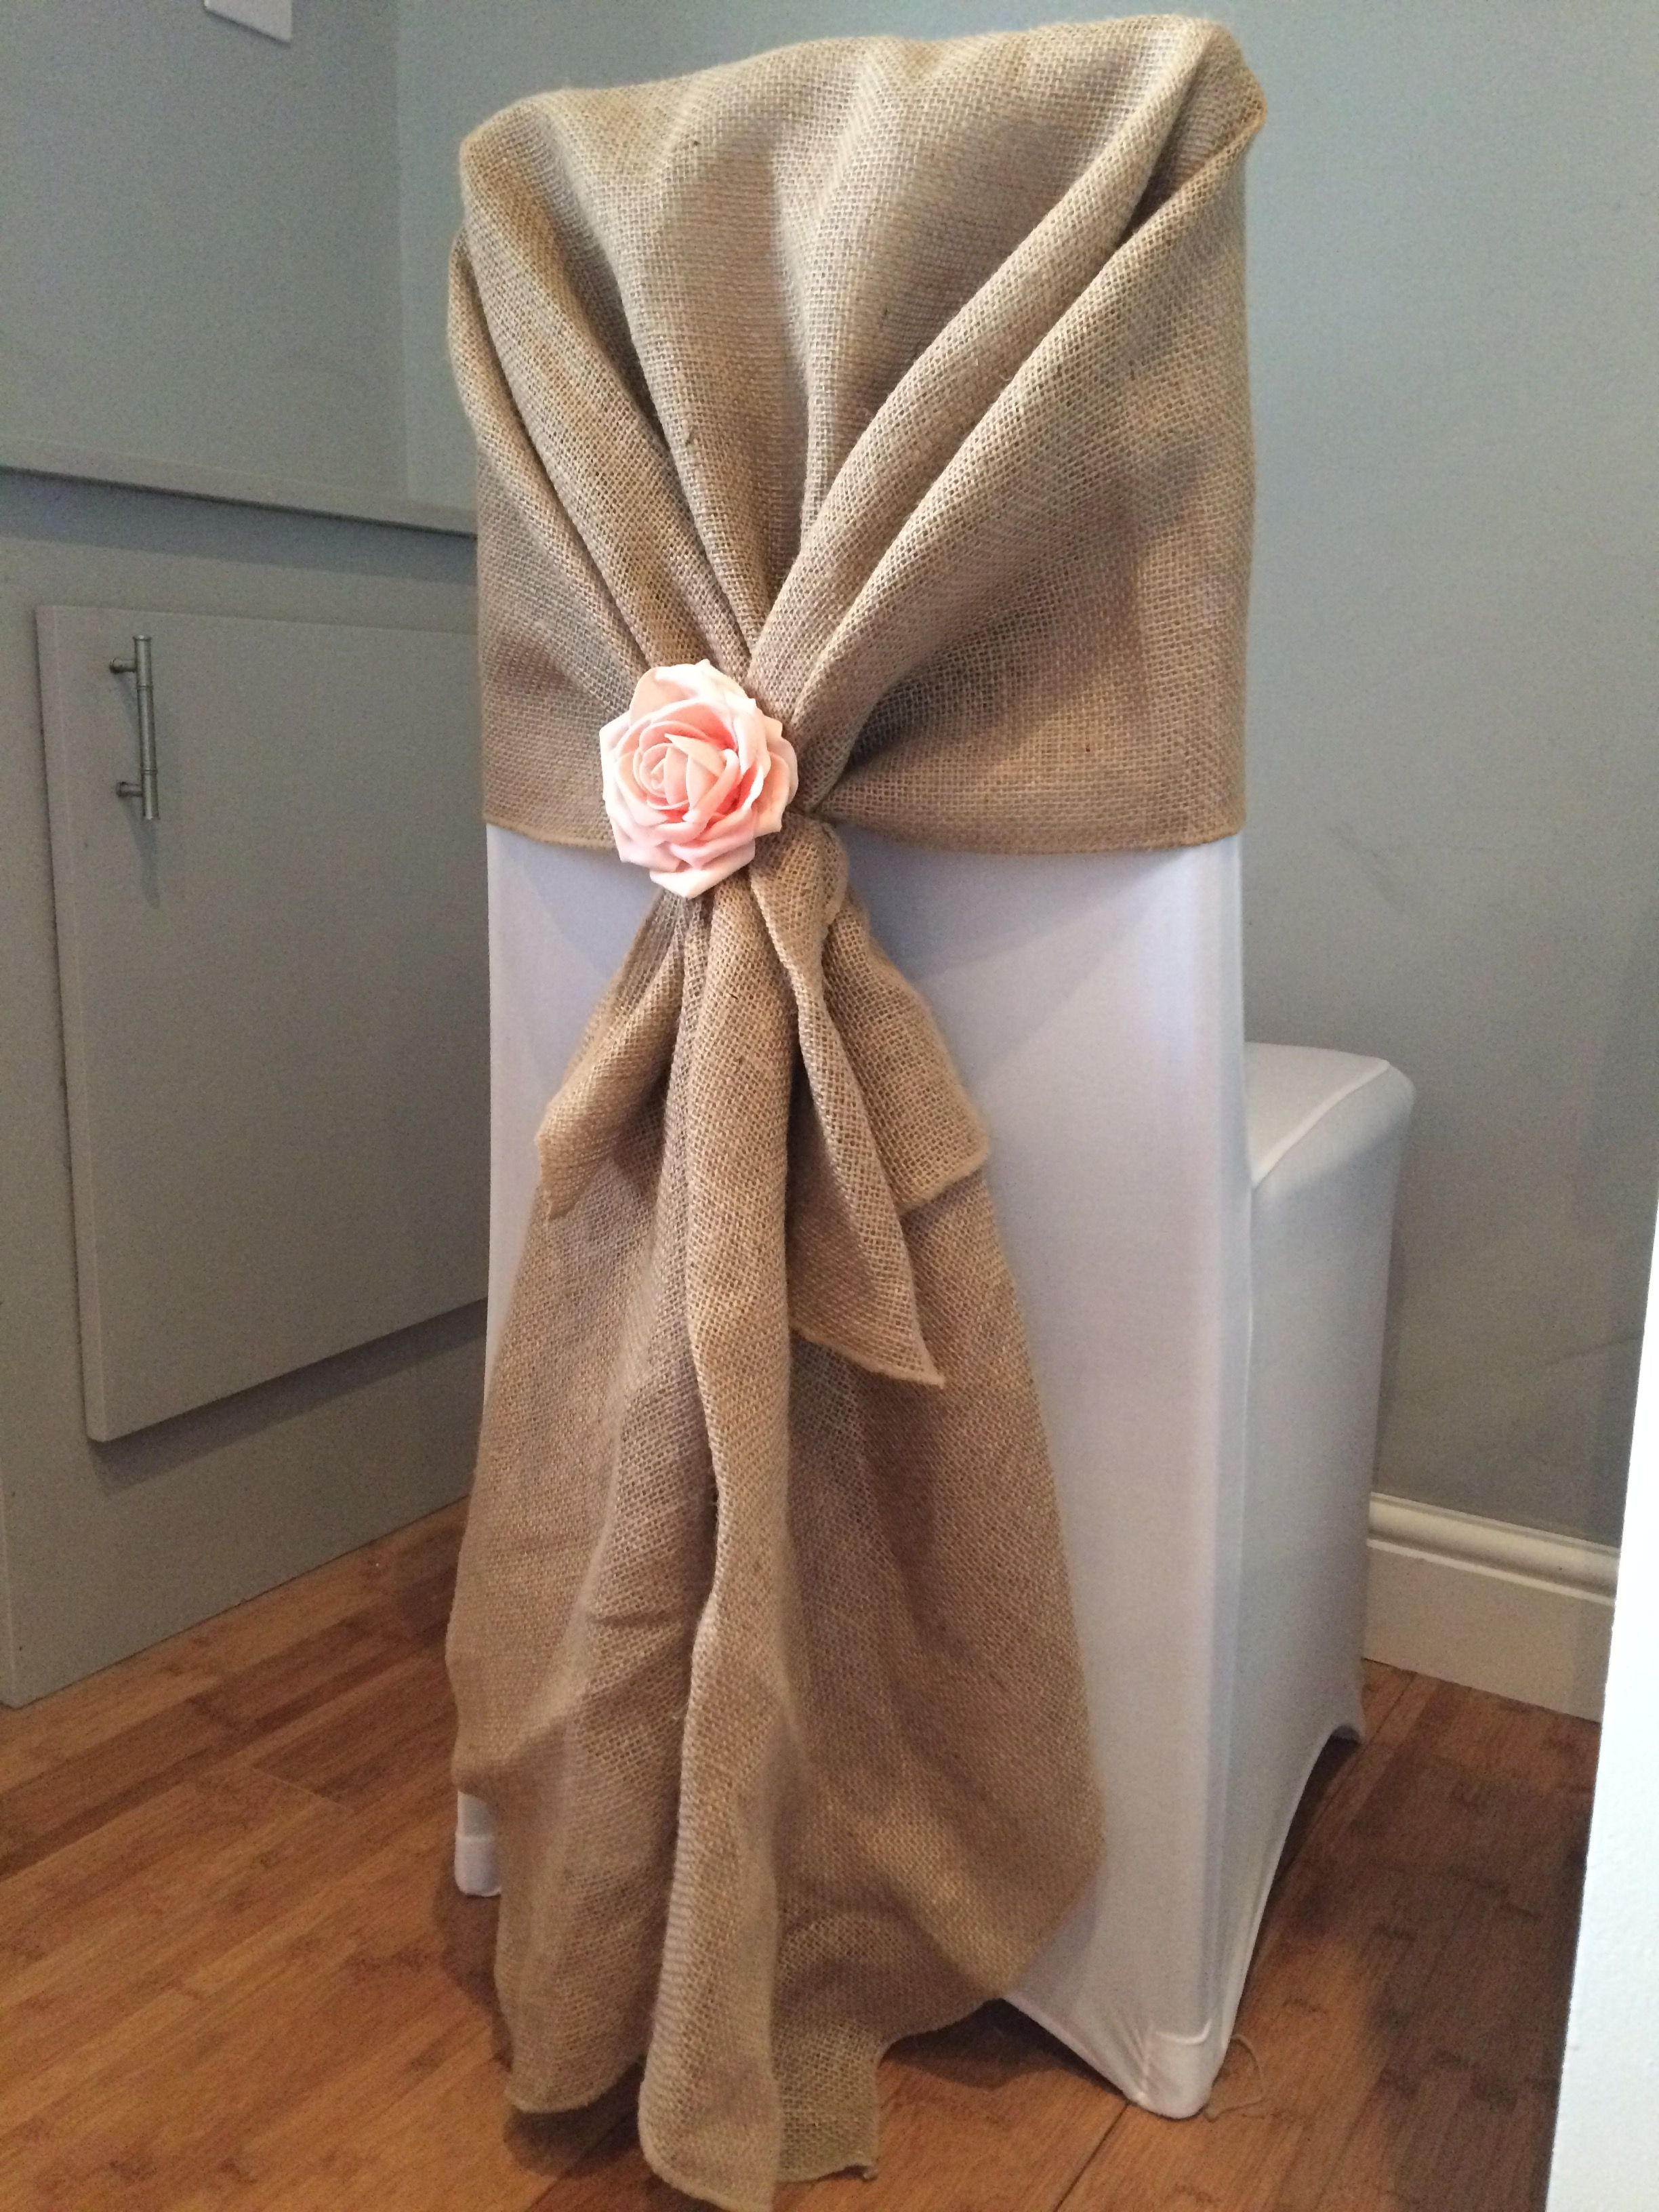 chair covers for hire south wales pink egg cover with hessian hood and rose accessory from affinity event decorators in